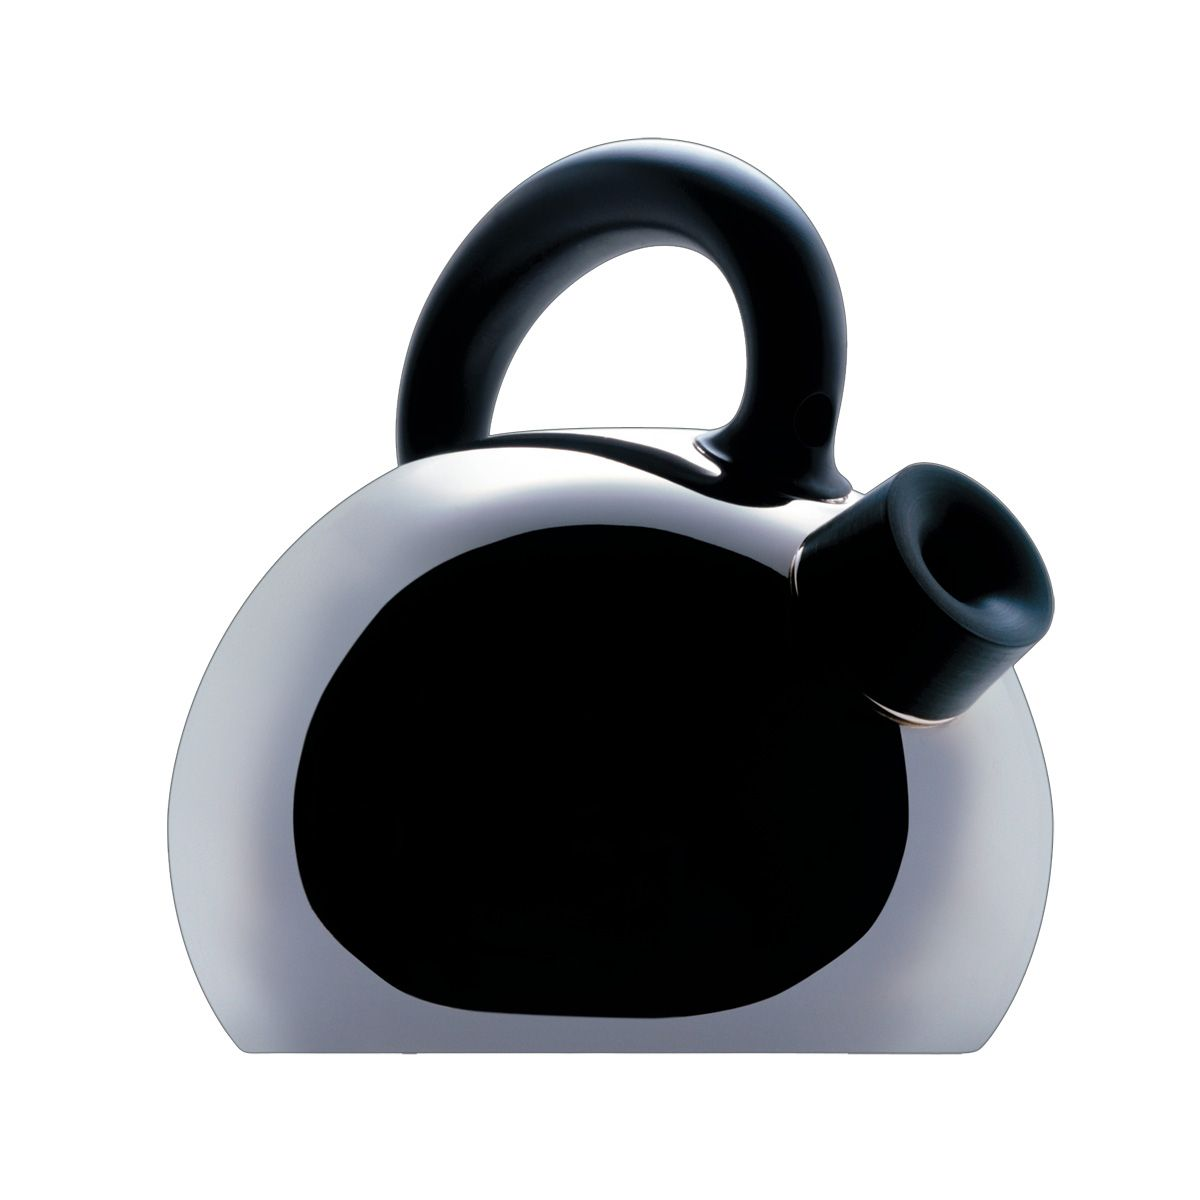 Alessi Gießkanne Alessi Kettle A Place To Call Home Teteras